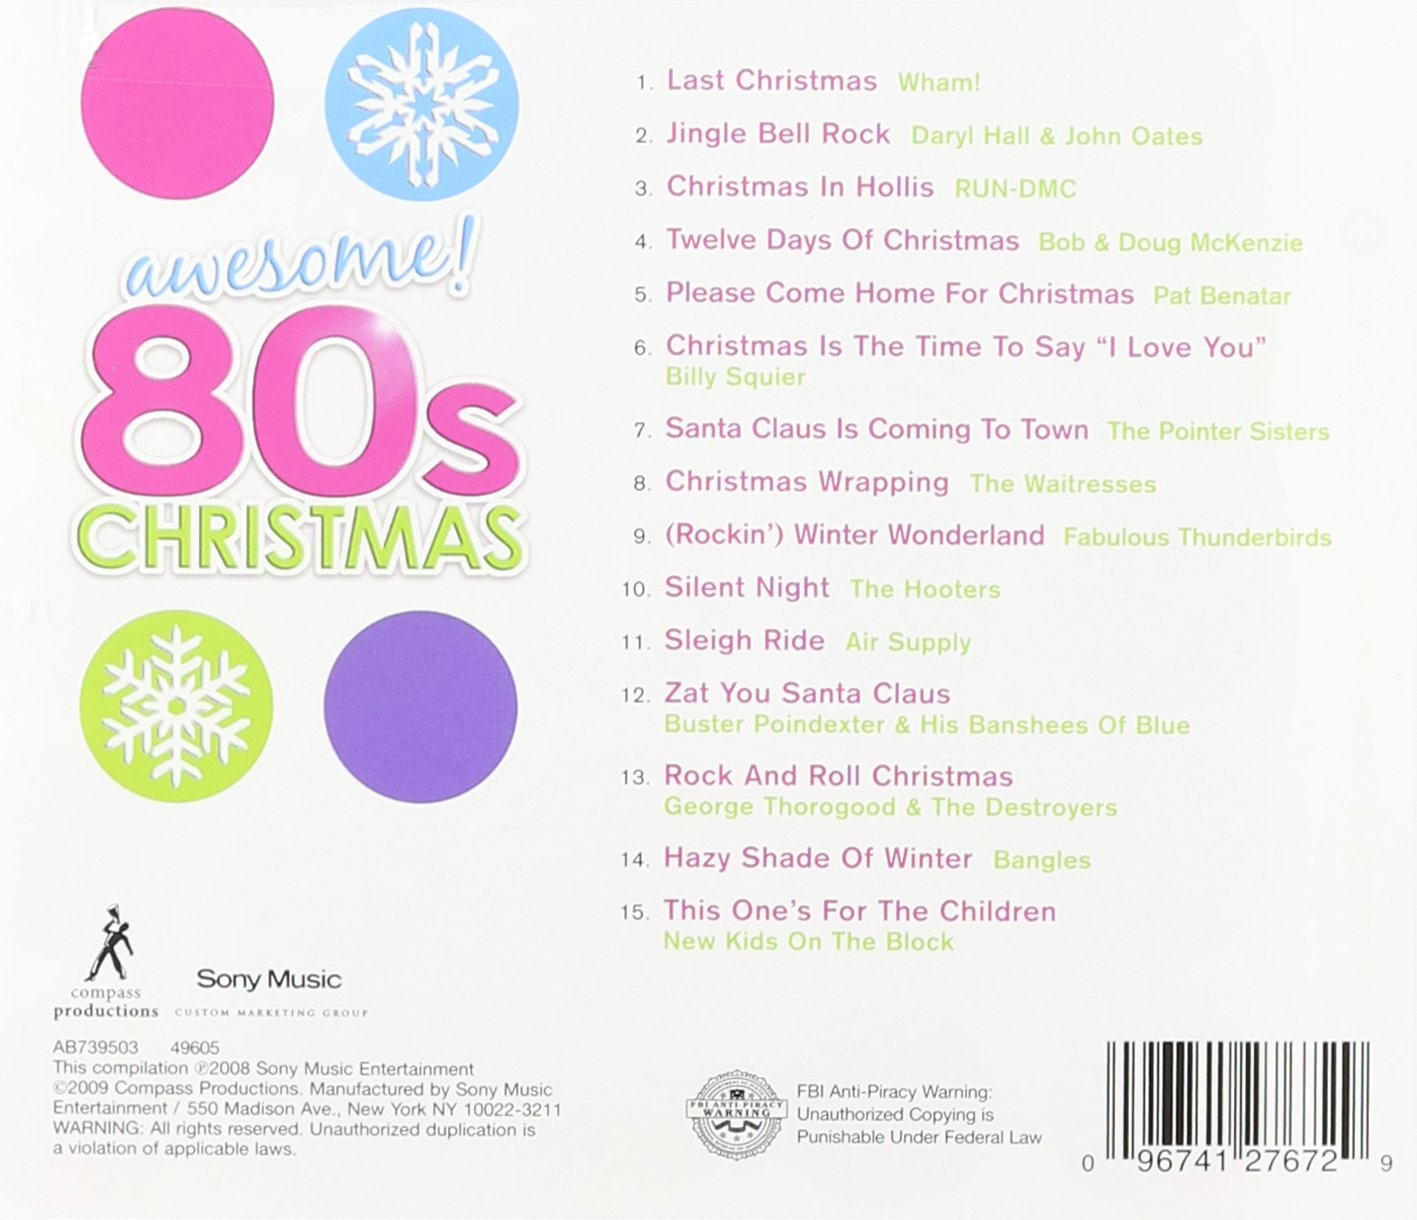 Awesome 80\'s Christmas - Awesome 80s Christmas - Amazon.com Music